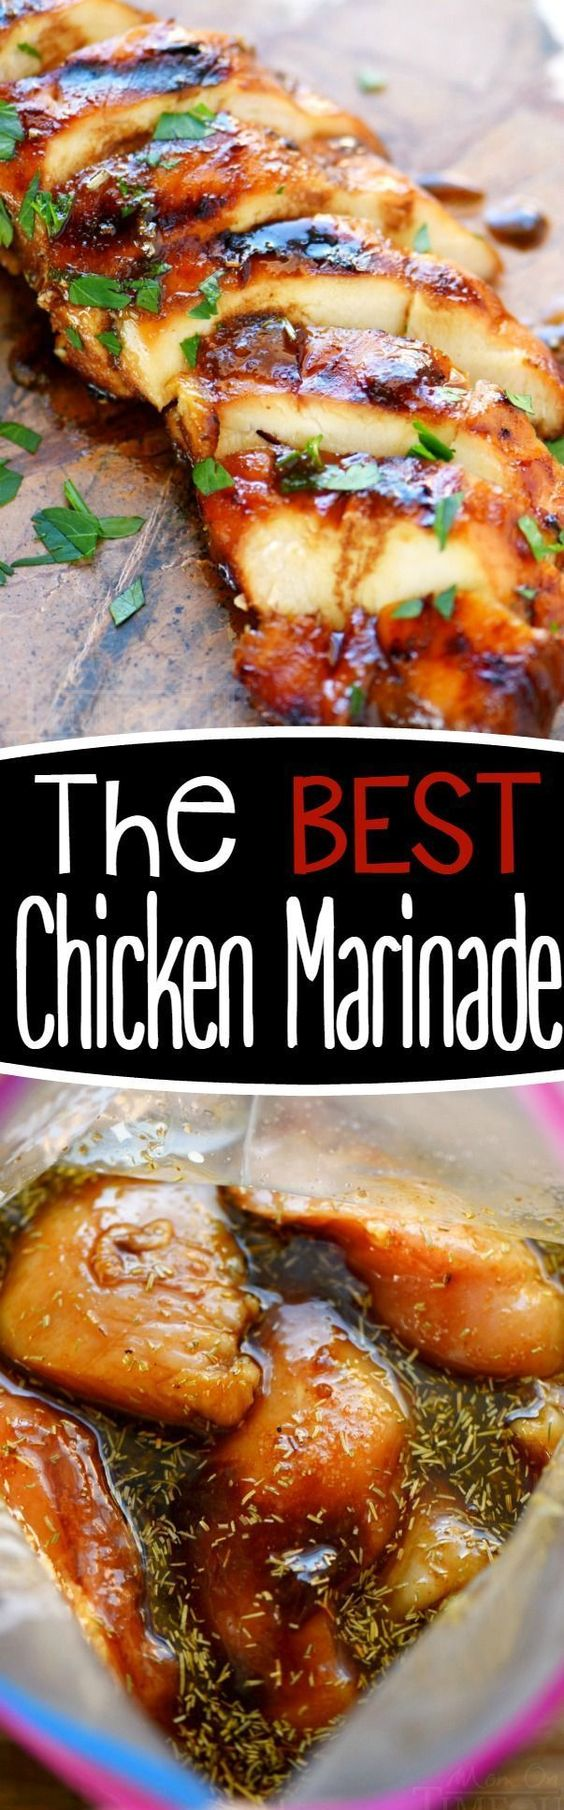 Look No Further For The Best Chicken Marinade Recipe Ever! This Easy  Chicken Marinade Recipe